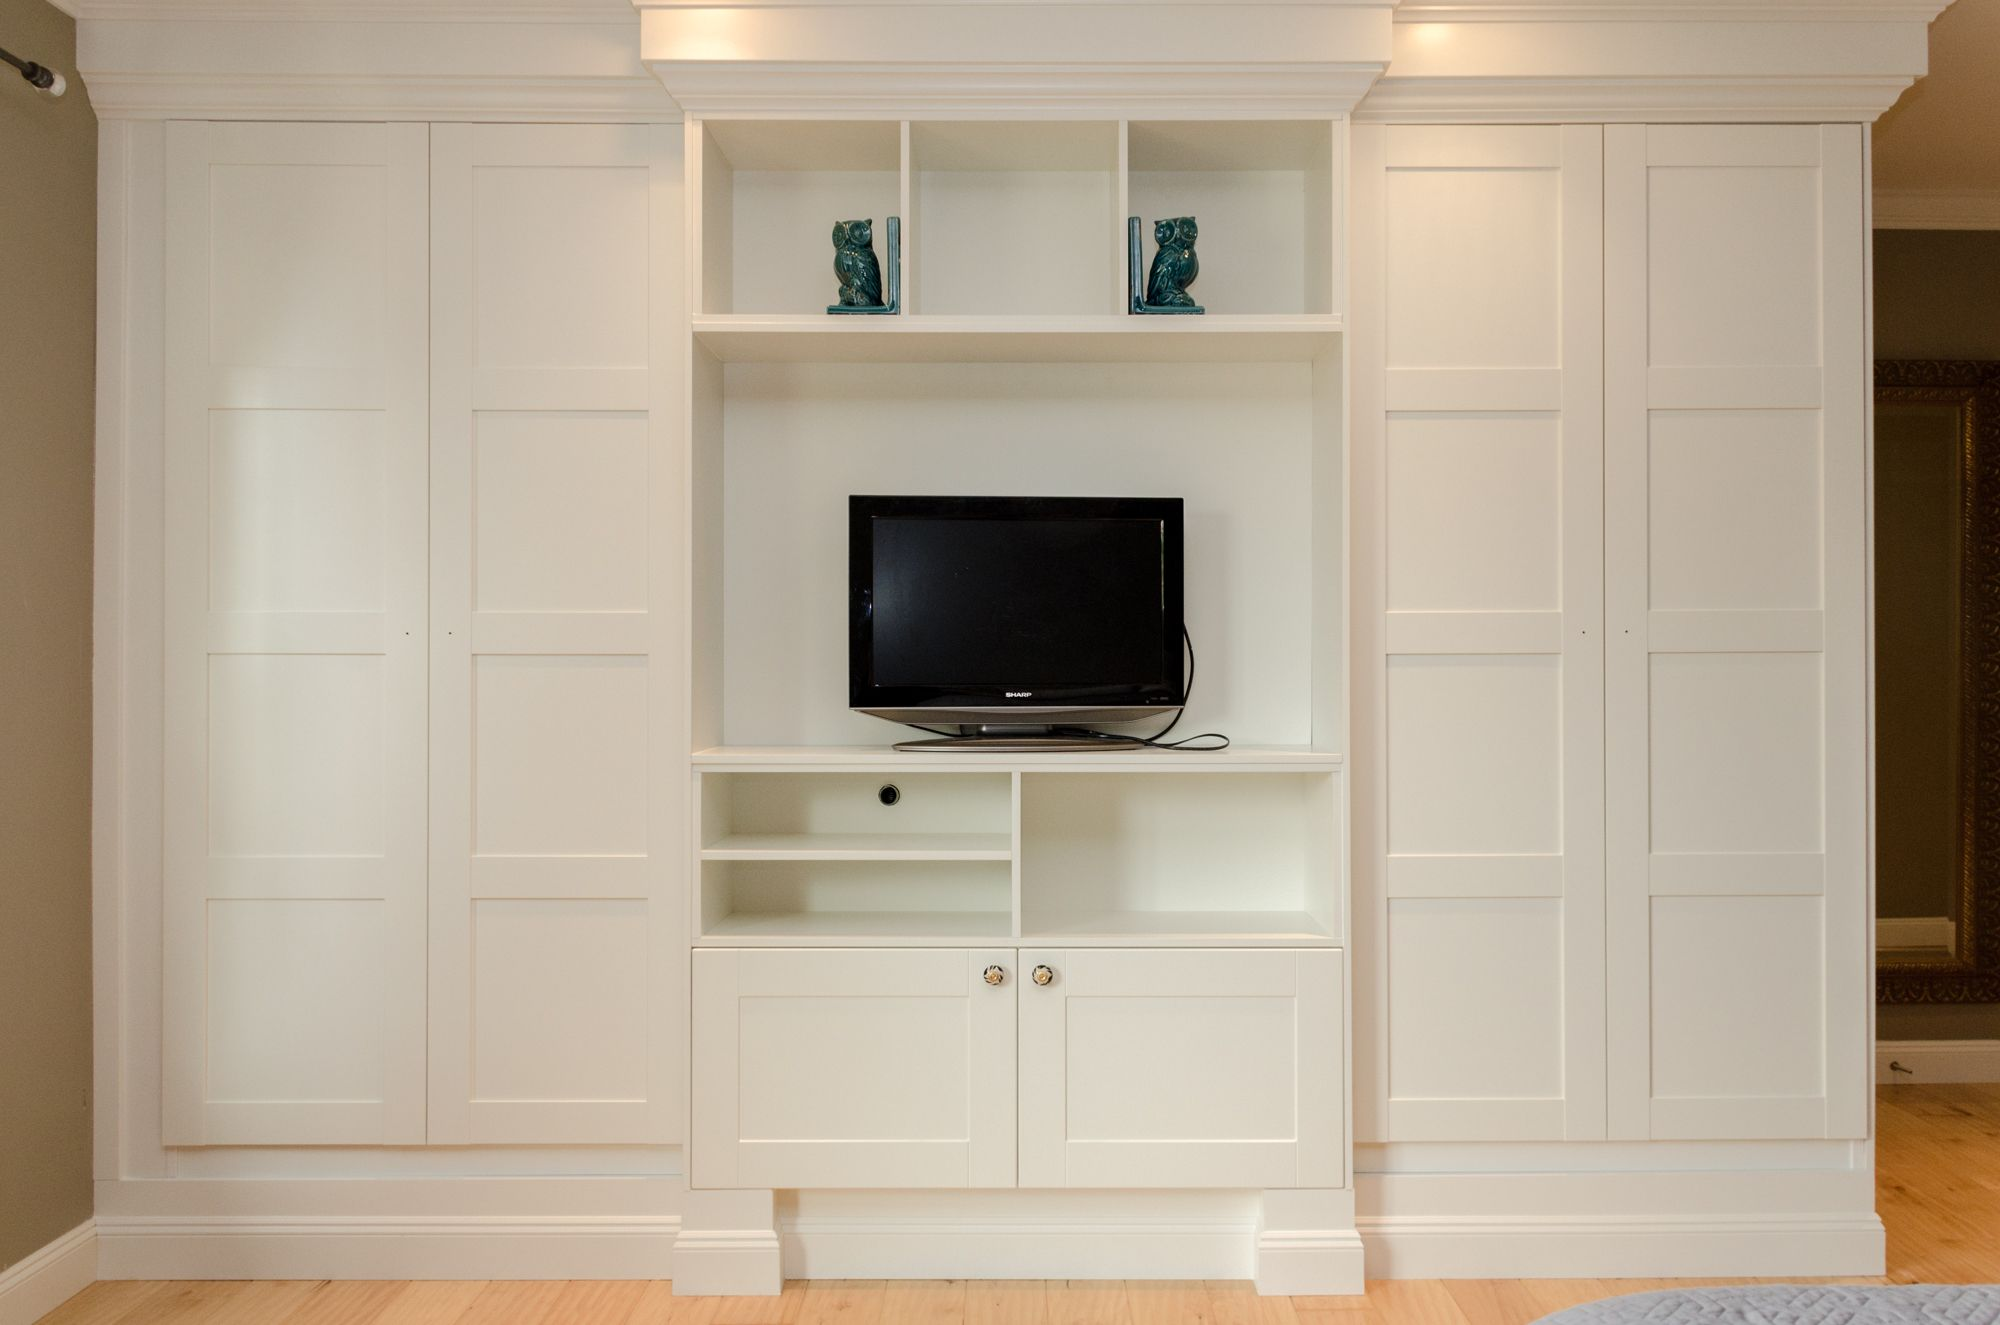 Wardrobe 4 How To Crown Moulding And Baseboards For Built In Look